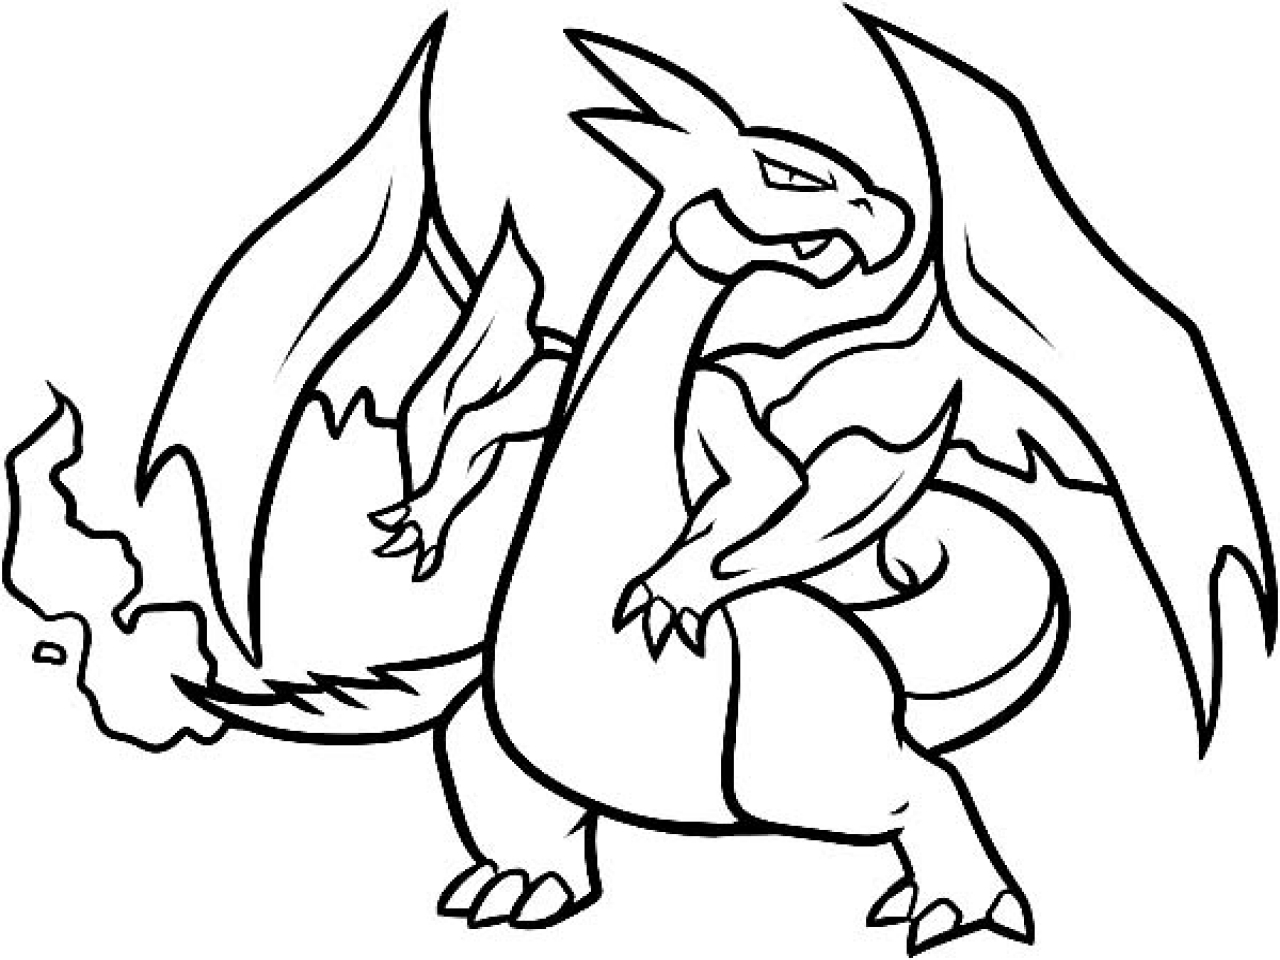 Mega Charizard X Drawing at GetDrawings